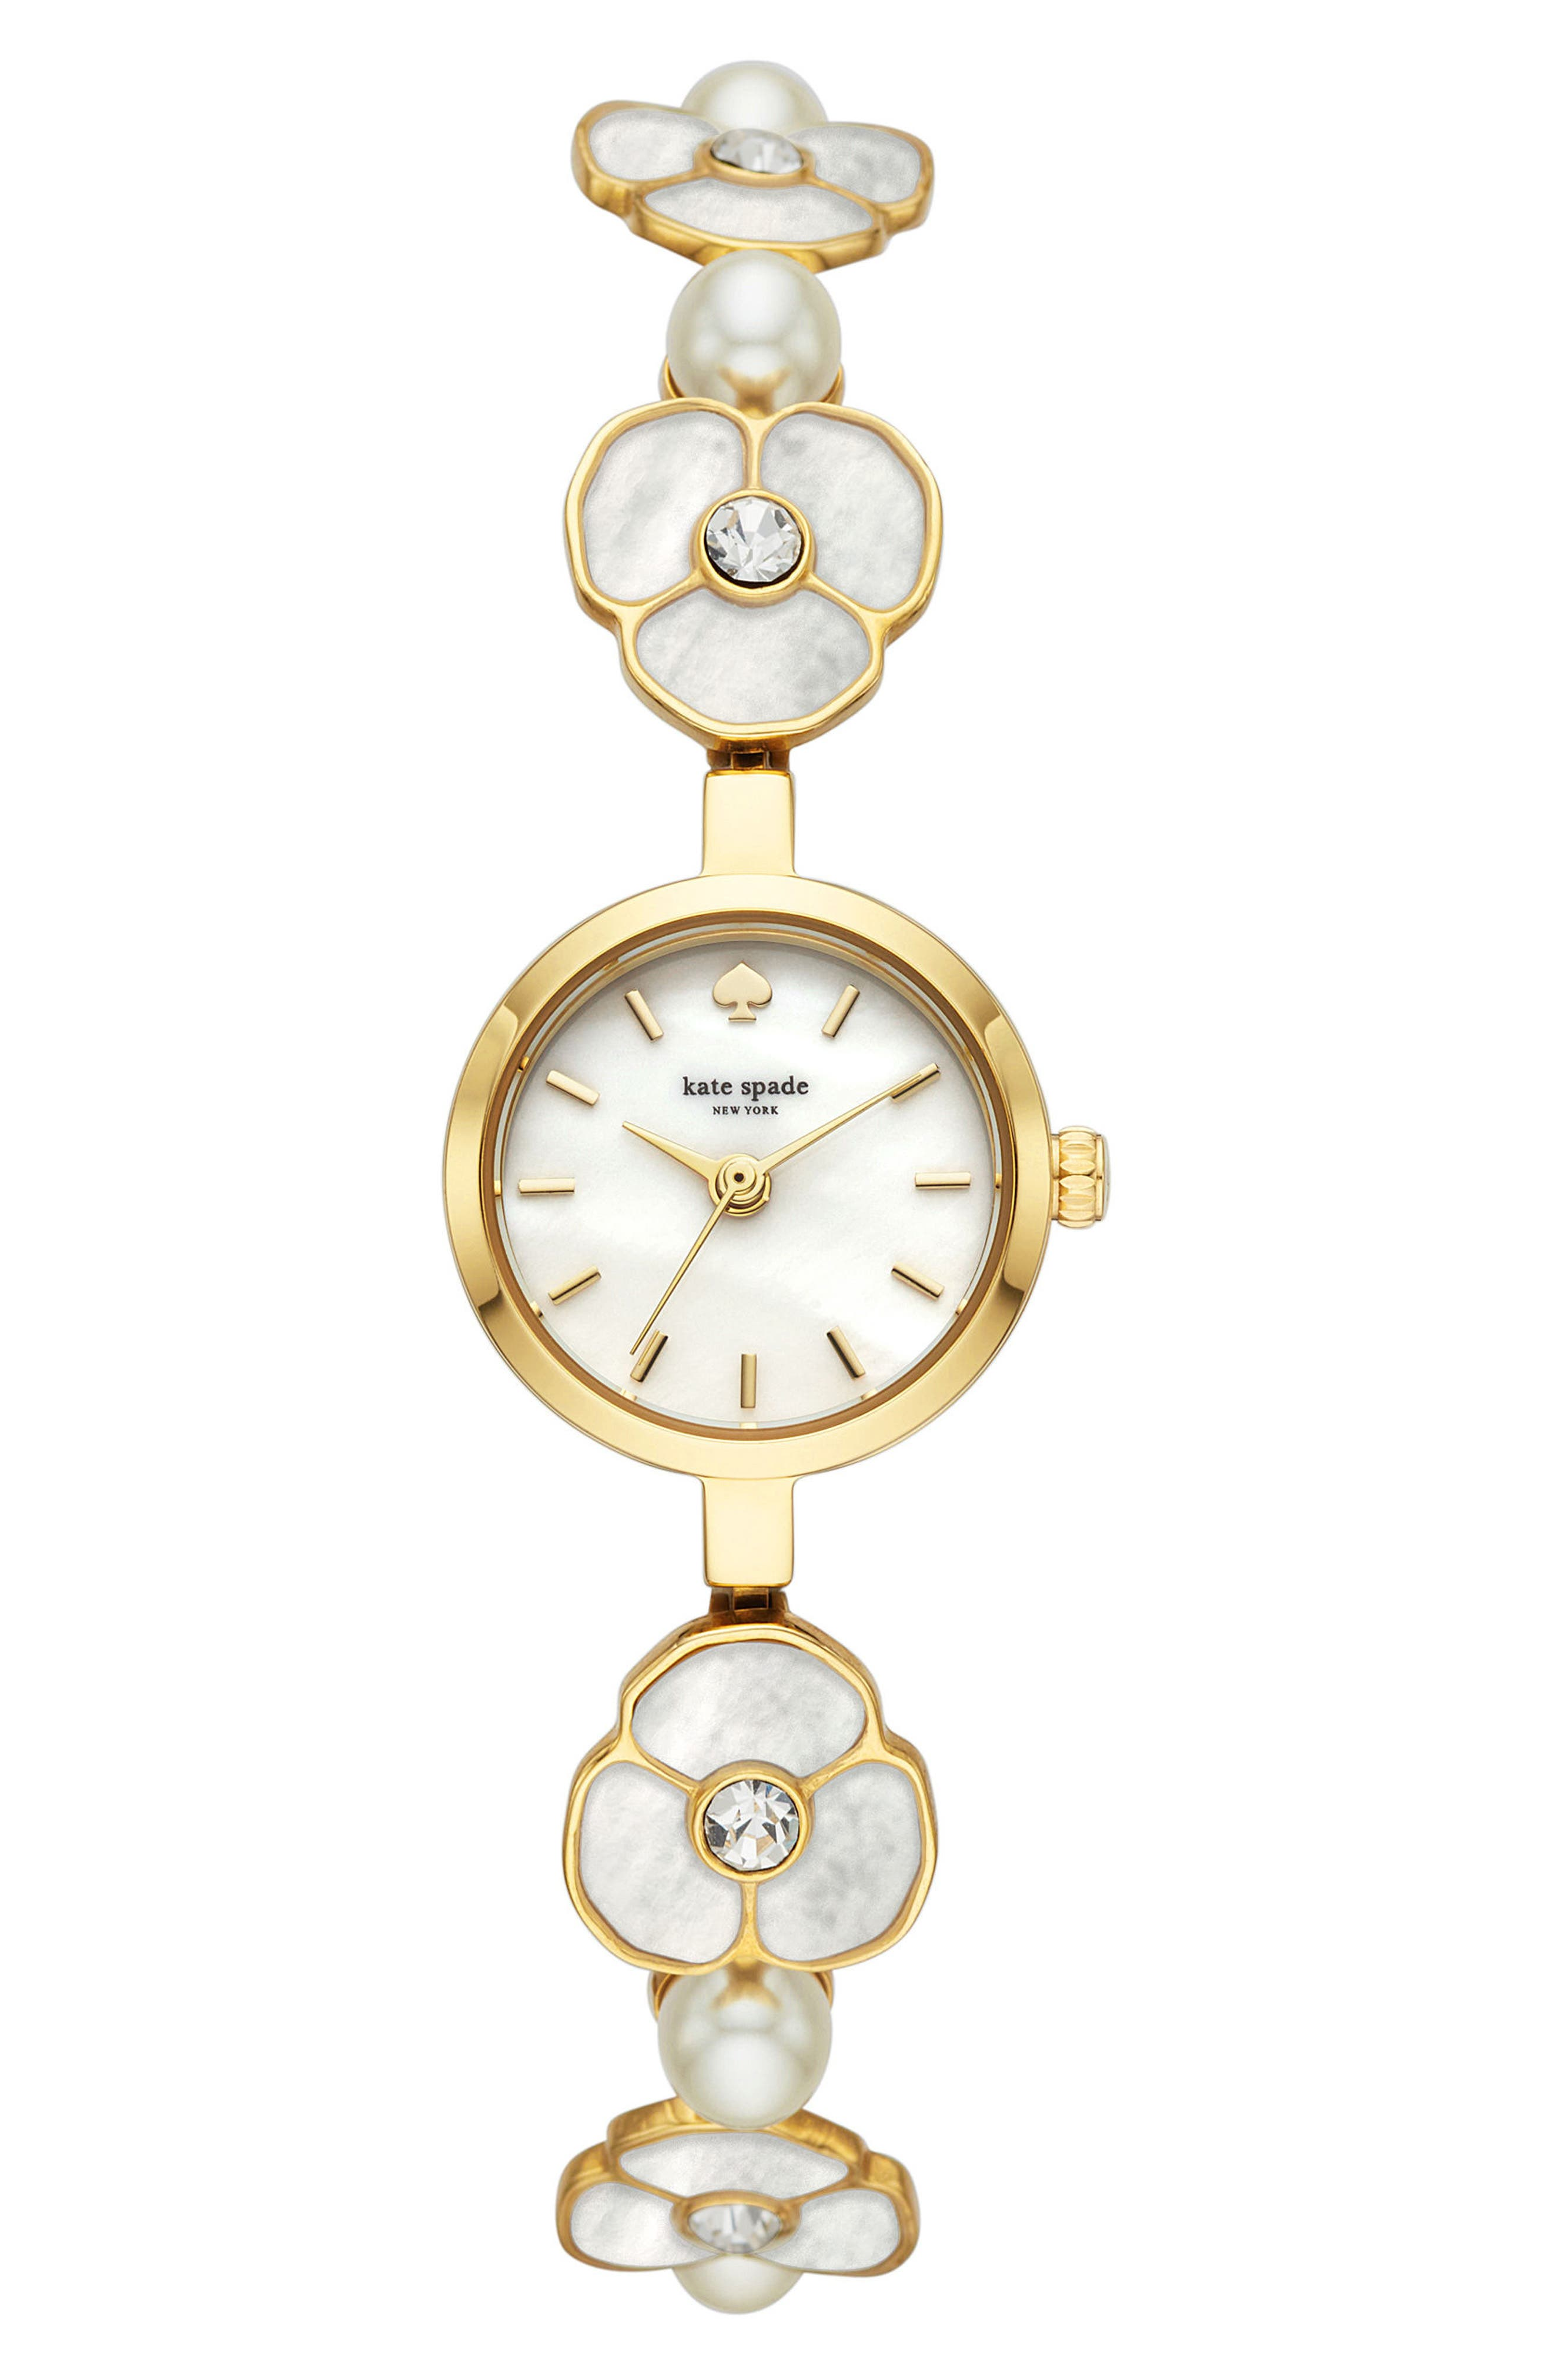 kate spade metro bracelet watch, 21mm,                         Main,                         color, Gold/ Mop/ Gold